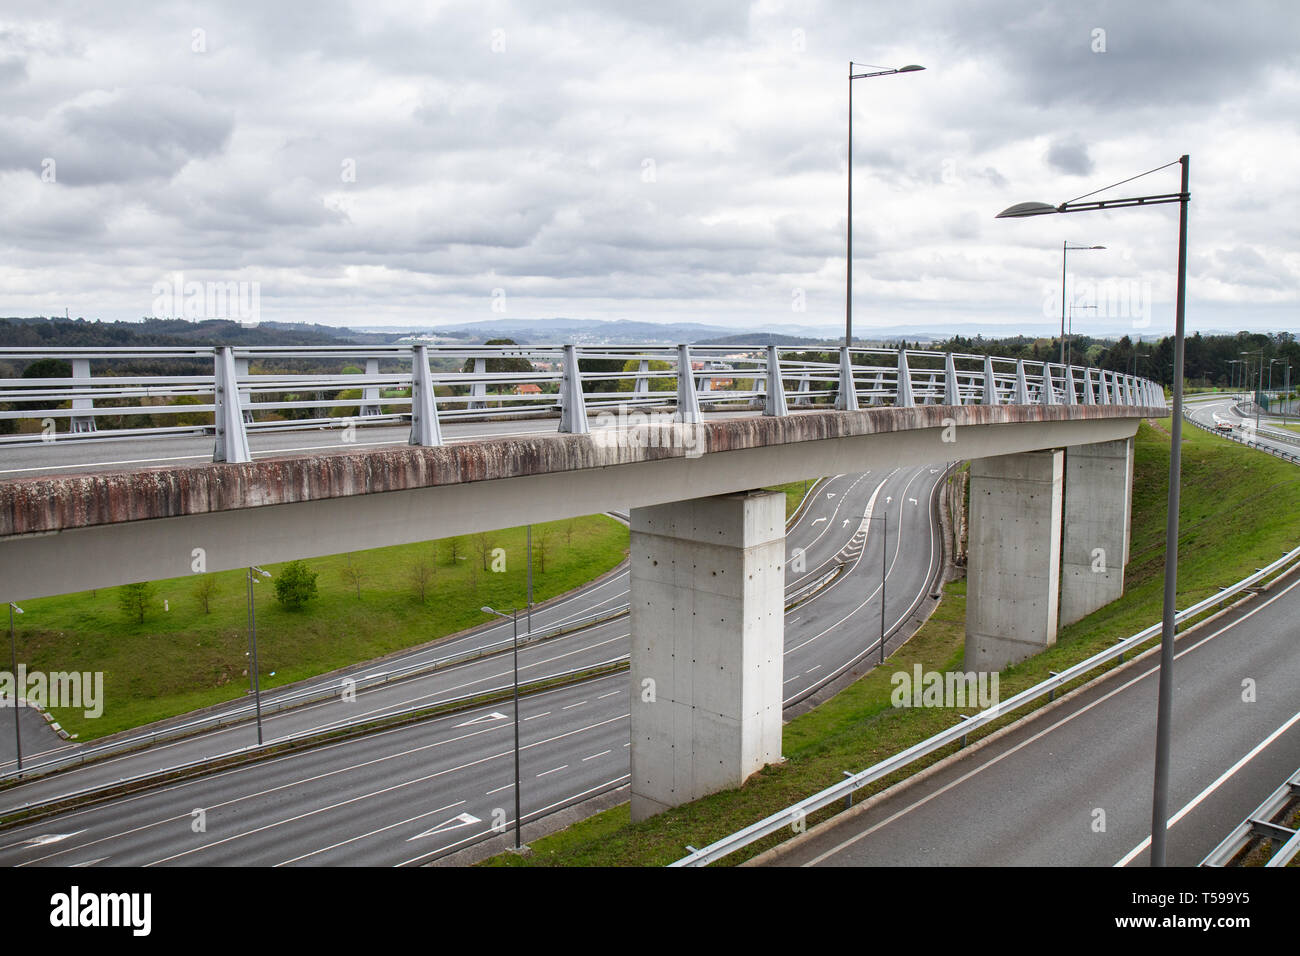 Many roads with connecting bridge. Infrastructure or road engineering concept - Stock Image